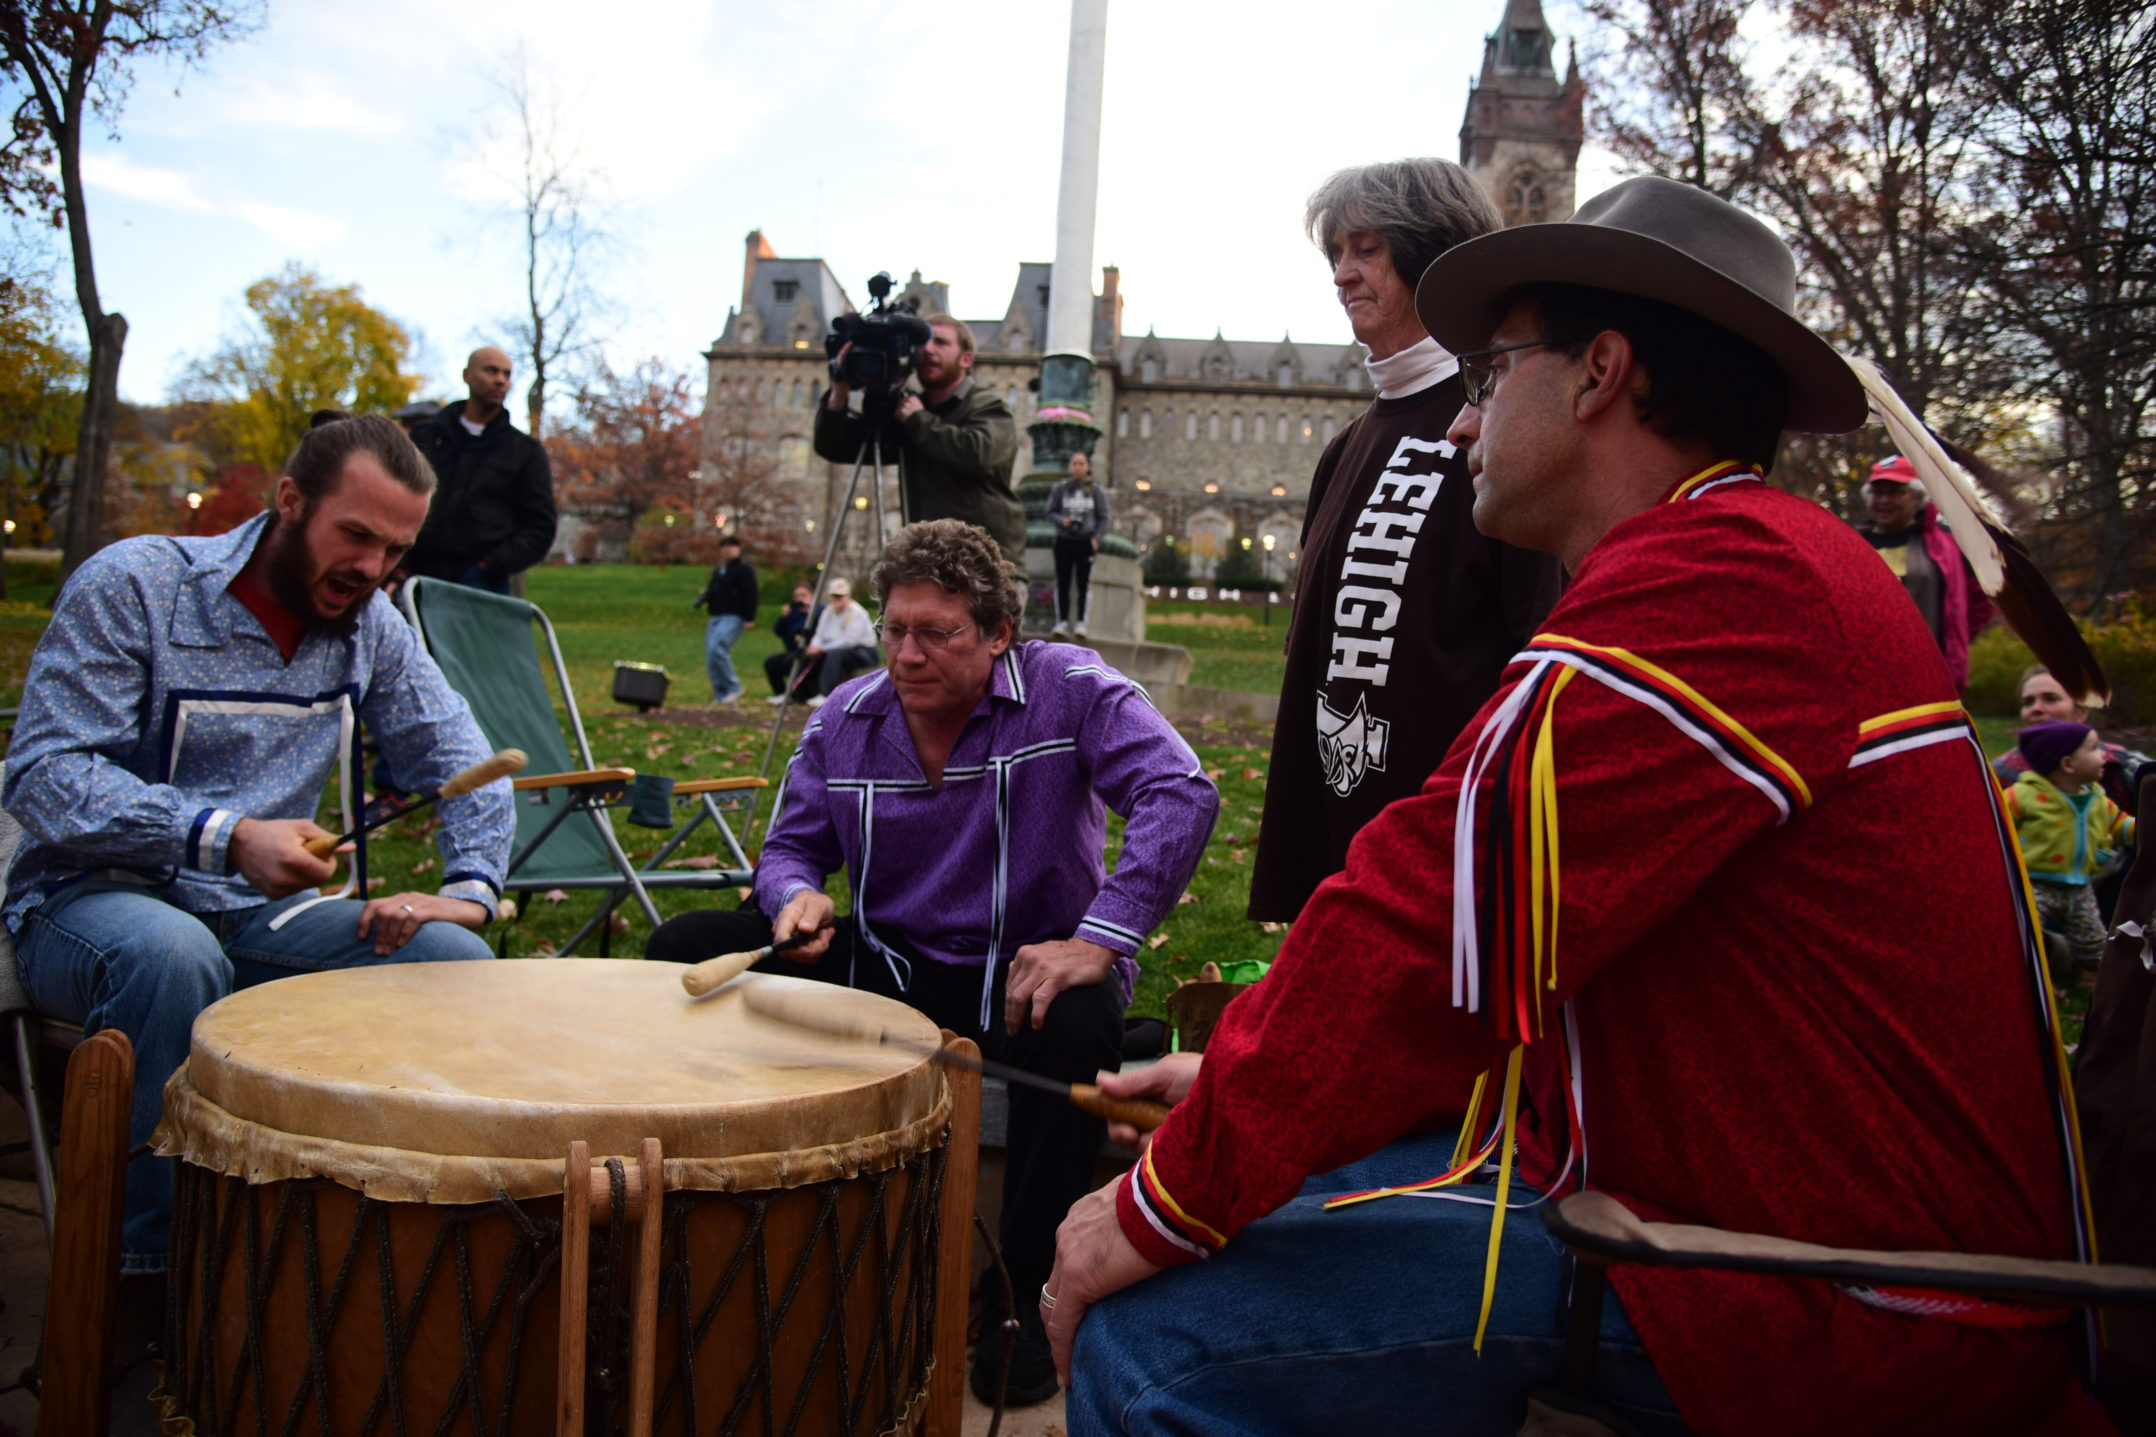 (From left) Dan Hunter, Rob Aptaker, grandmother Shirley Khabbaz and Dar Khabbaz gather around the drum. The drummers are traditionally positioned around the drum.  Usually, the men sit at the drum and the women stand singing the higher notes that strengthen the prayer or intent of the song. (Ashley Omoma/B&W Staff)